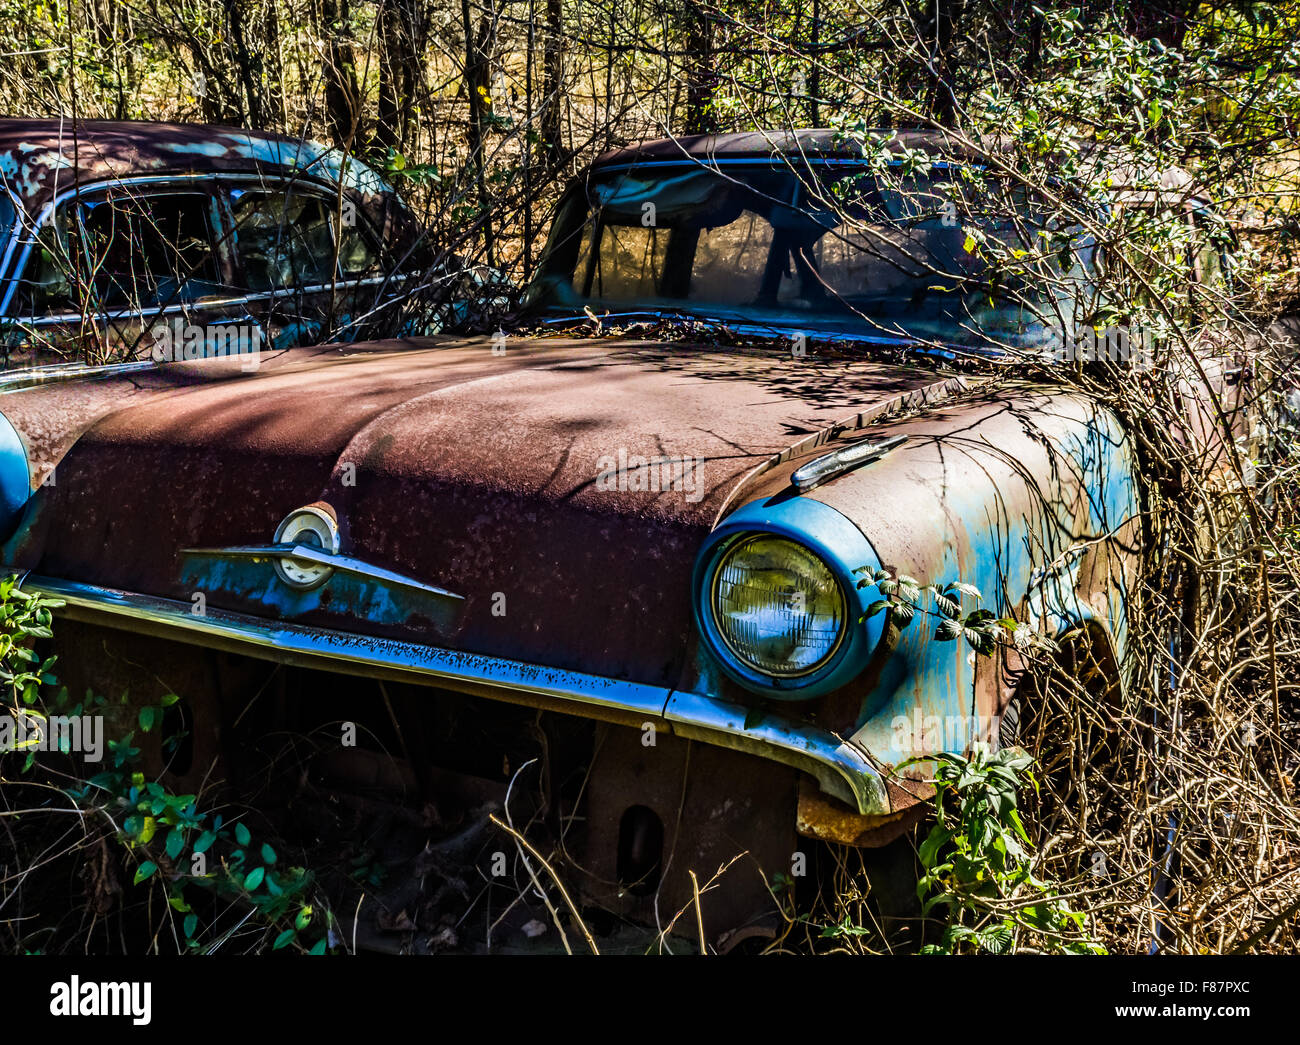 Old, junk cars in the woods Stock Photo, Royalty Free Image ...